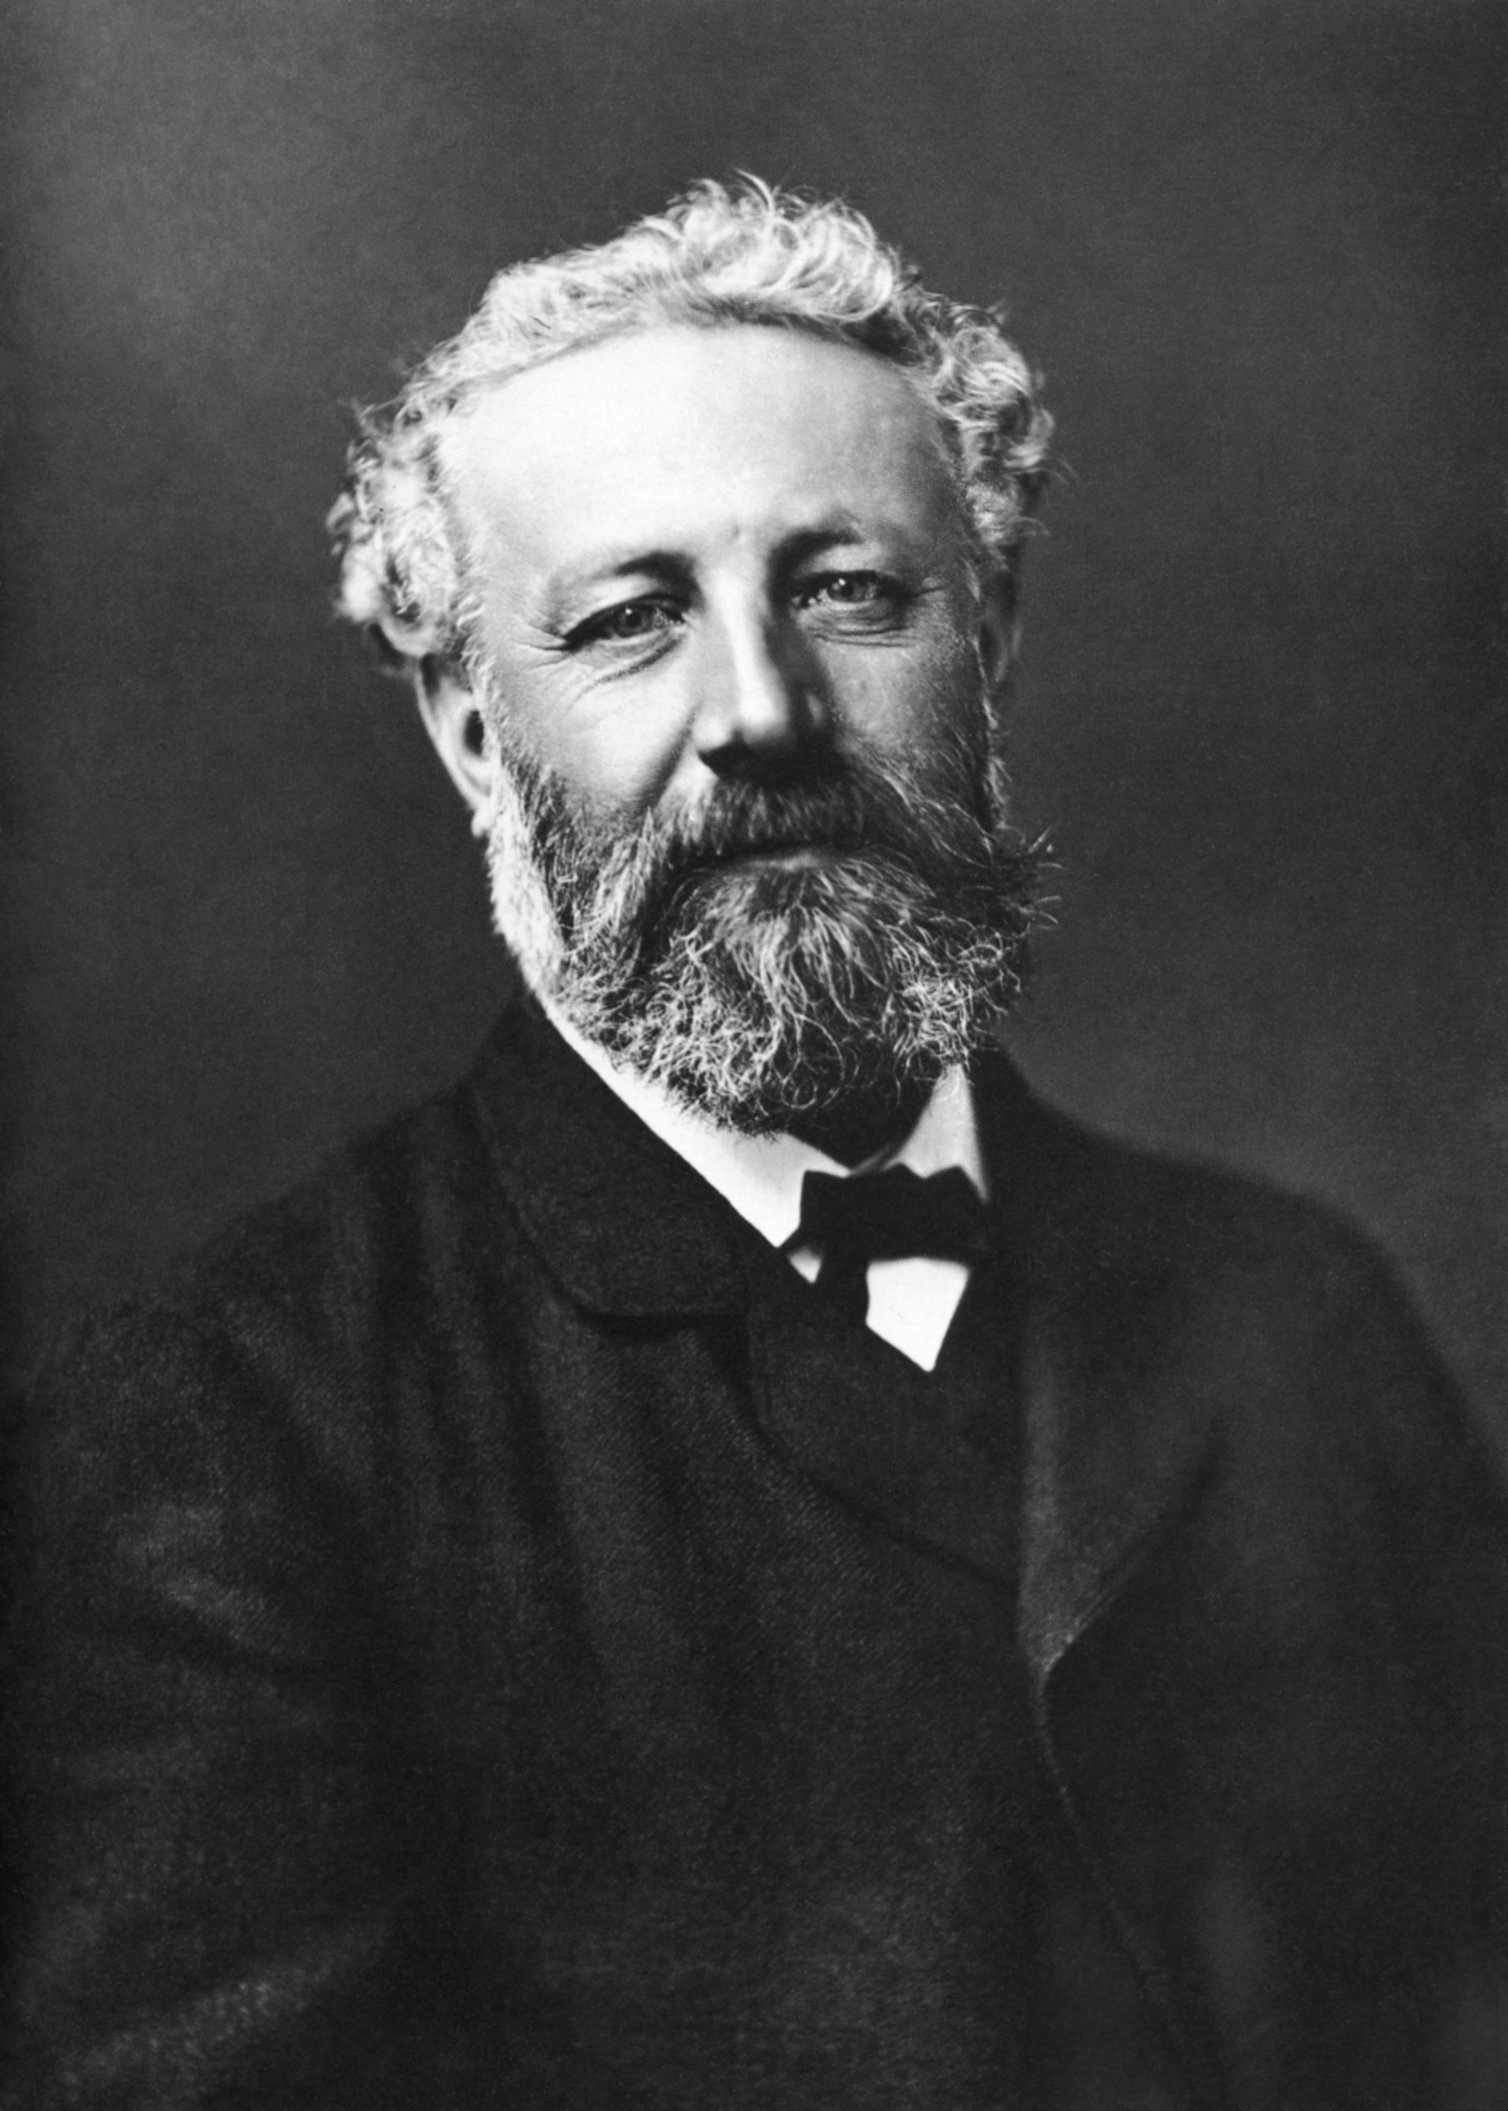 Jules Verne and the Nineteenth Century, in light of Walter Benjamin